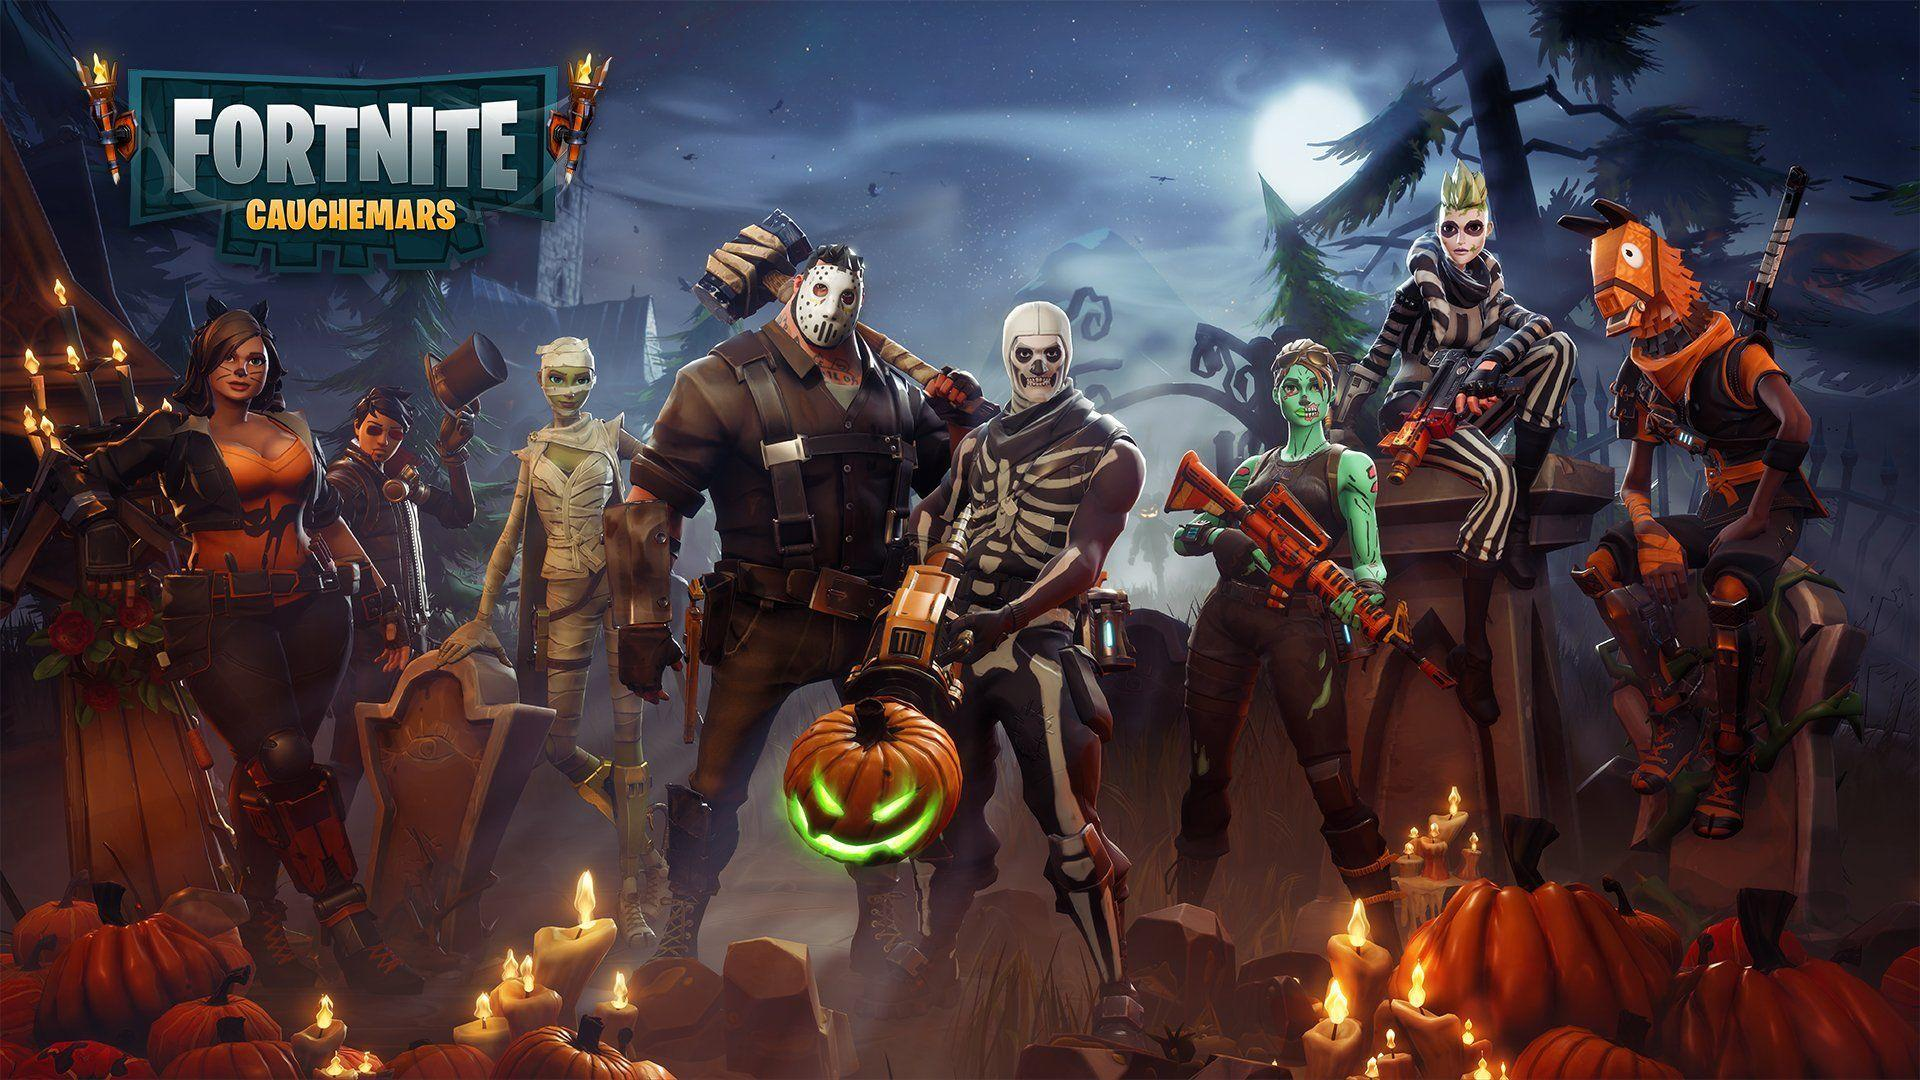 Zombie Fortnite Wallpapers - Wallpaper Cave